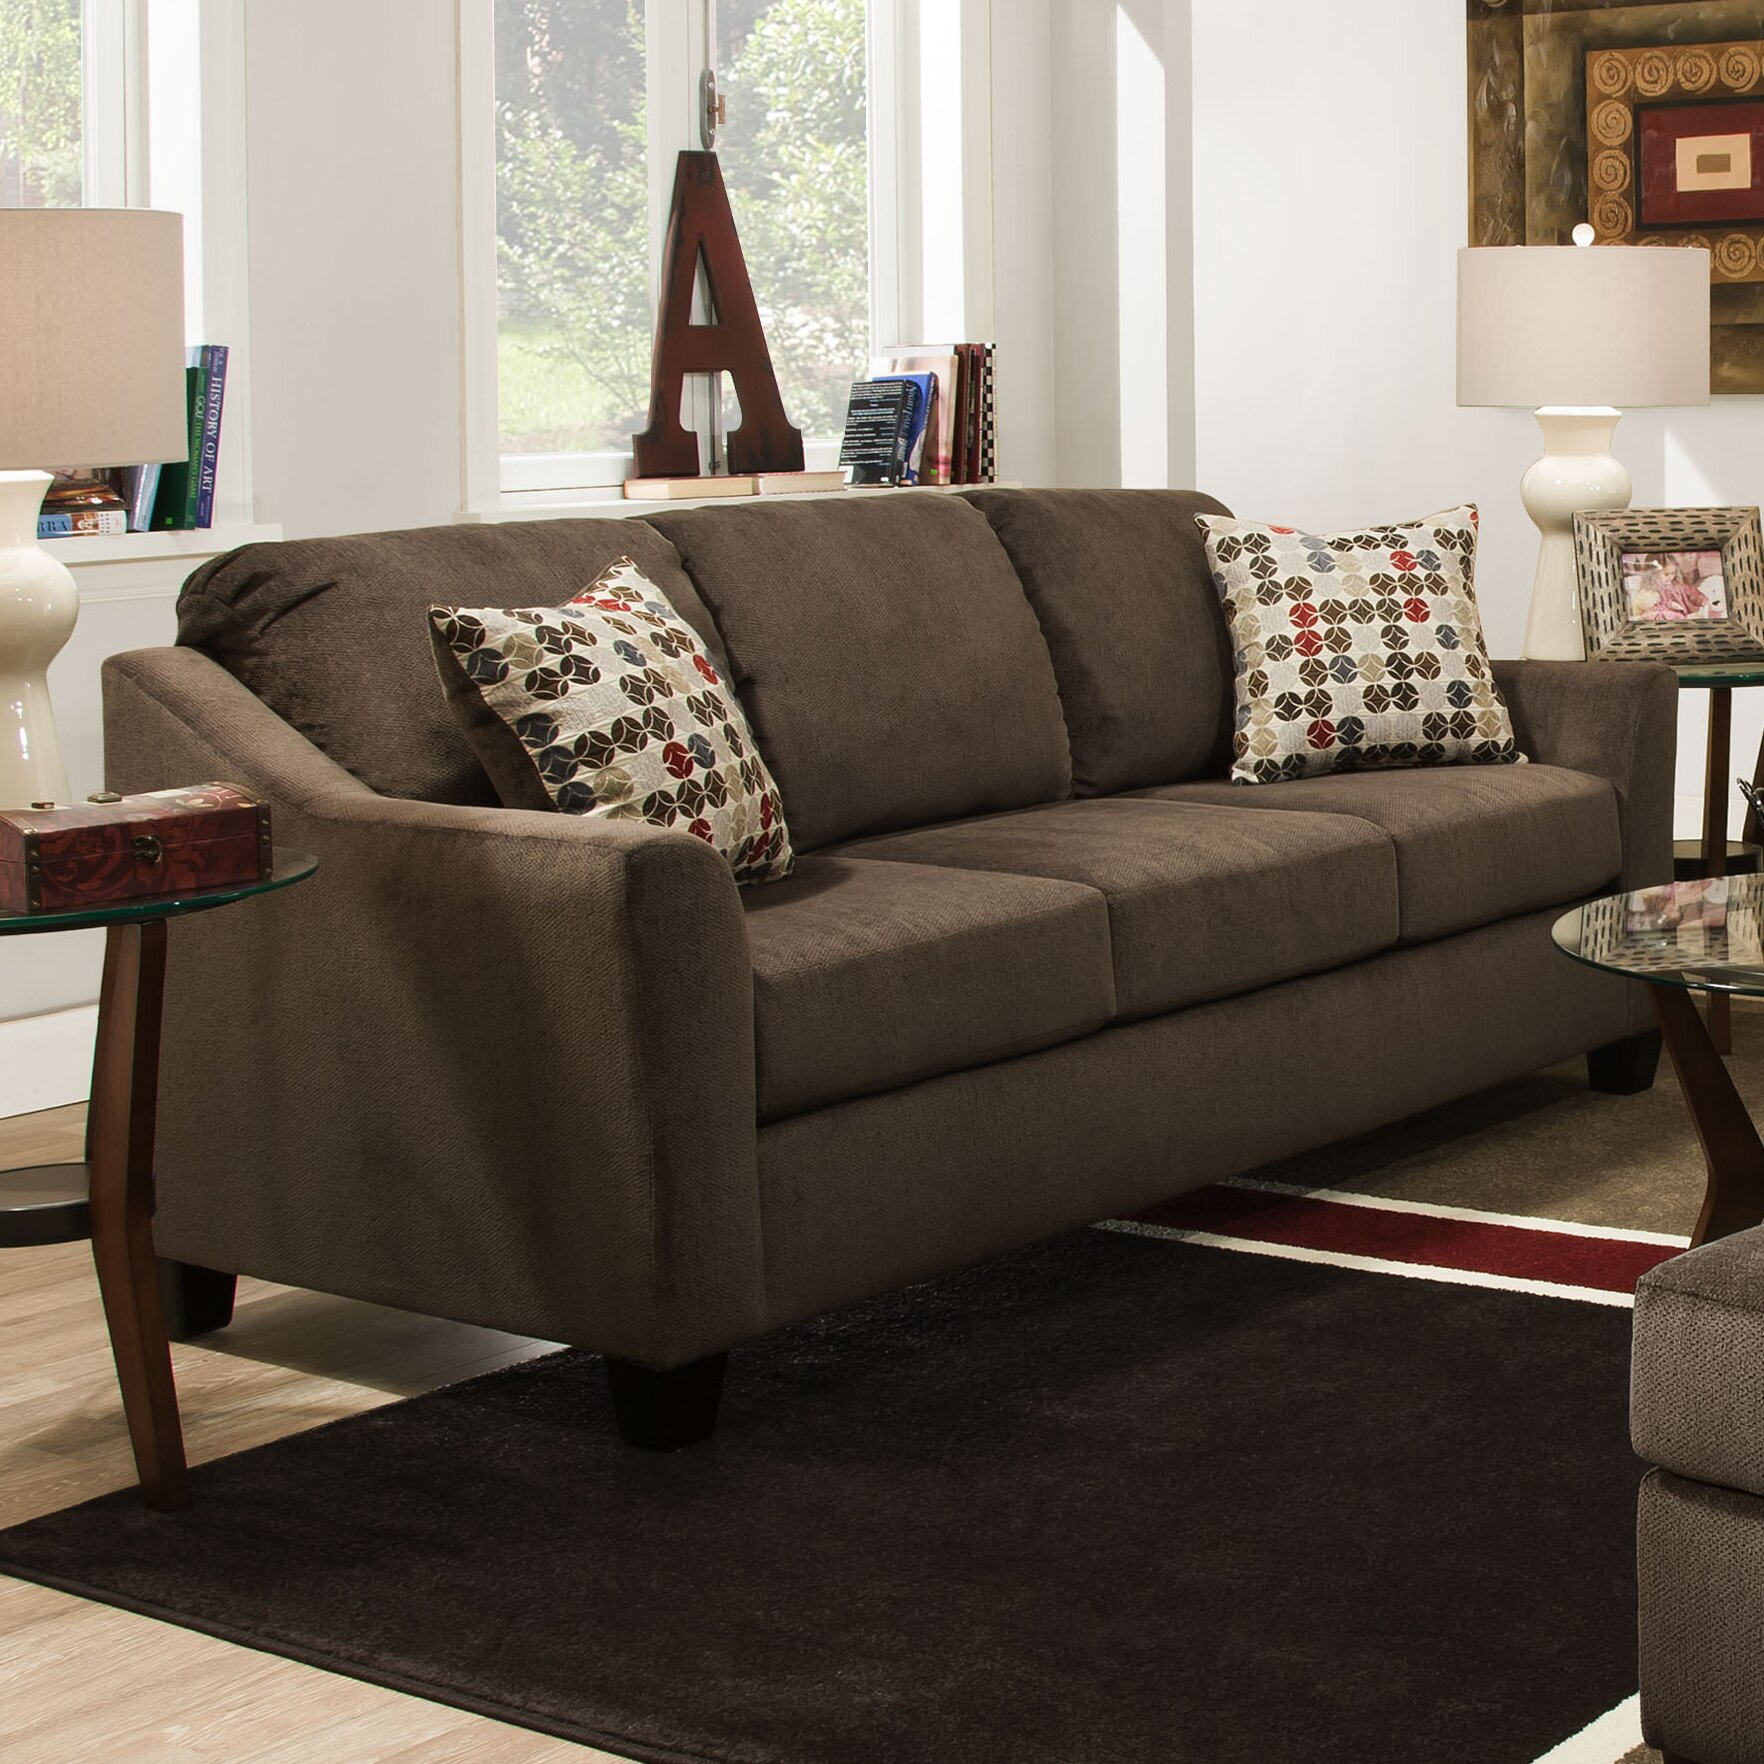 darby home co simmons upholstery olivia queen sleeper sofa c